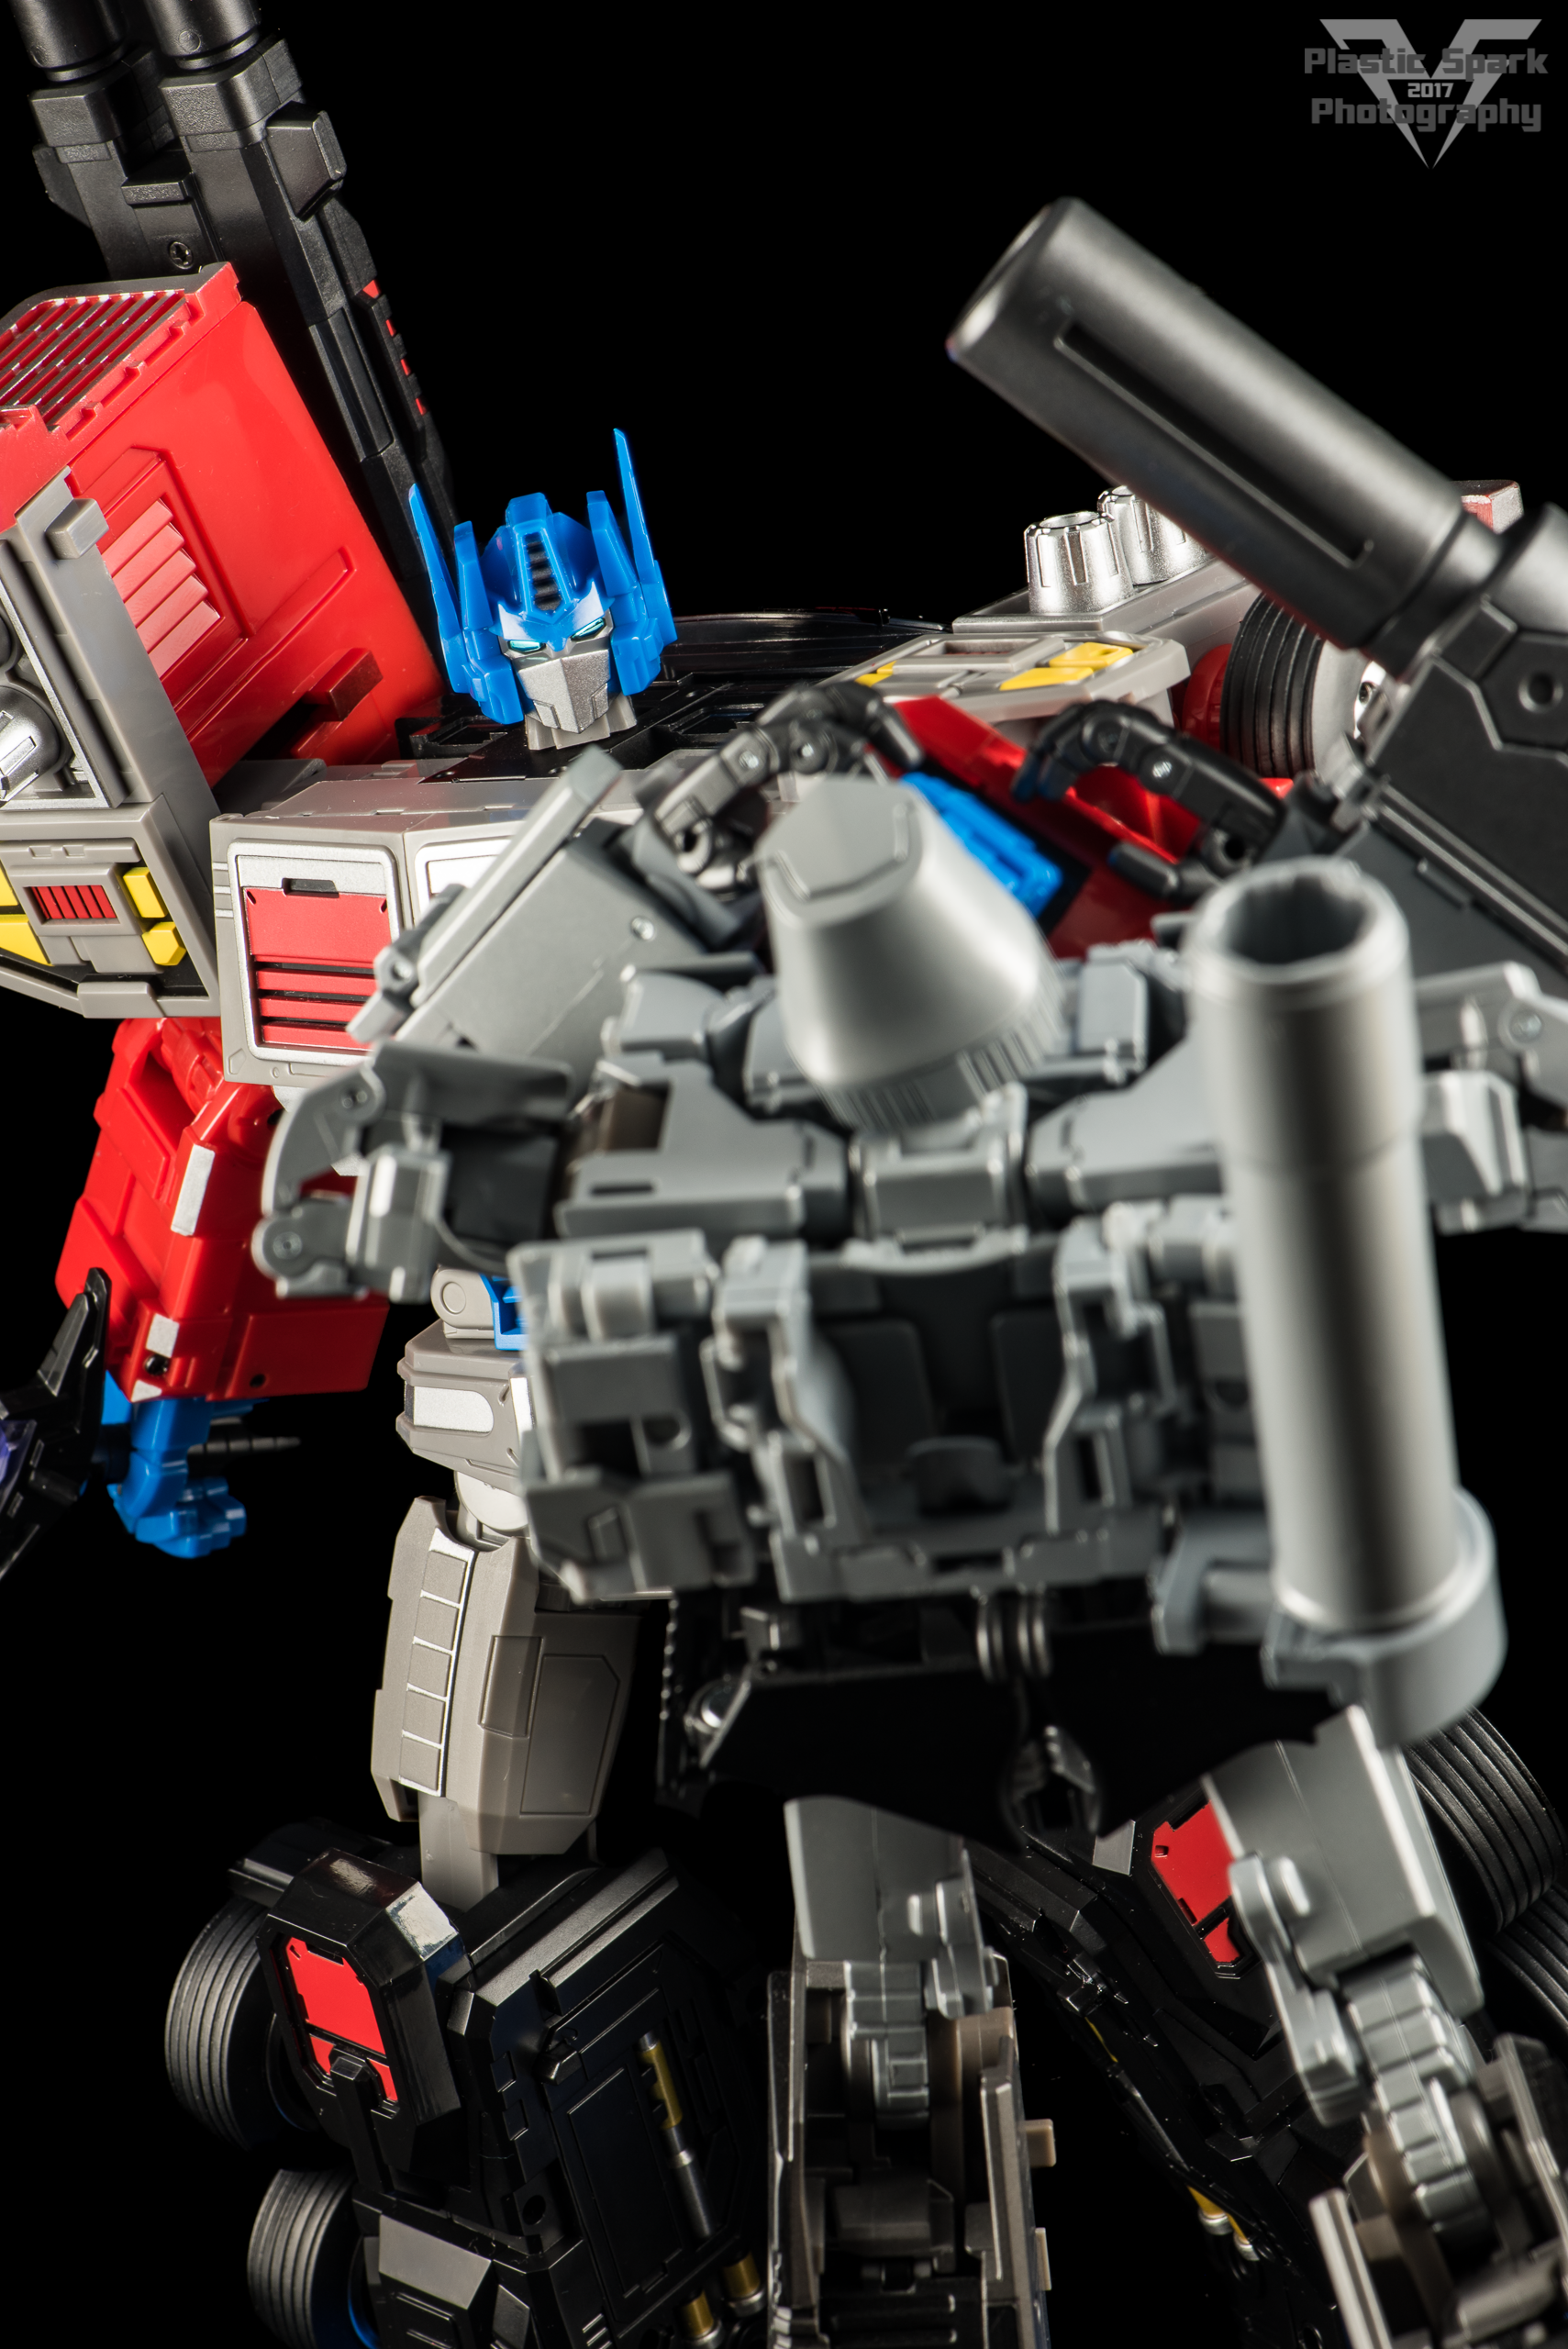 Fans-Hobby-MB-04-Gunfighter-II-(20-of-61).png